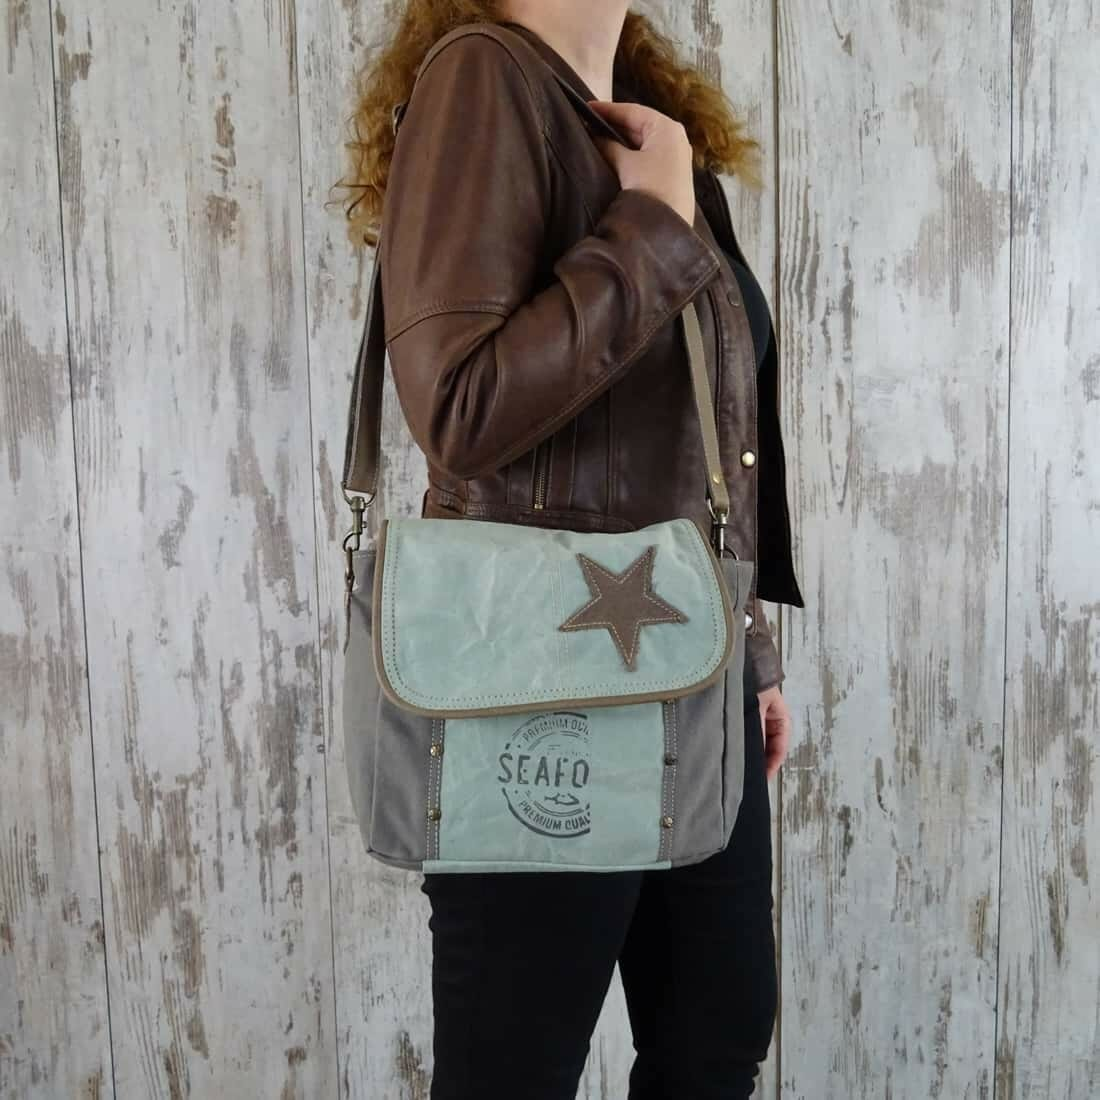 Myra Bag Schoudertas Pascalle persoon